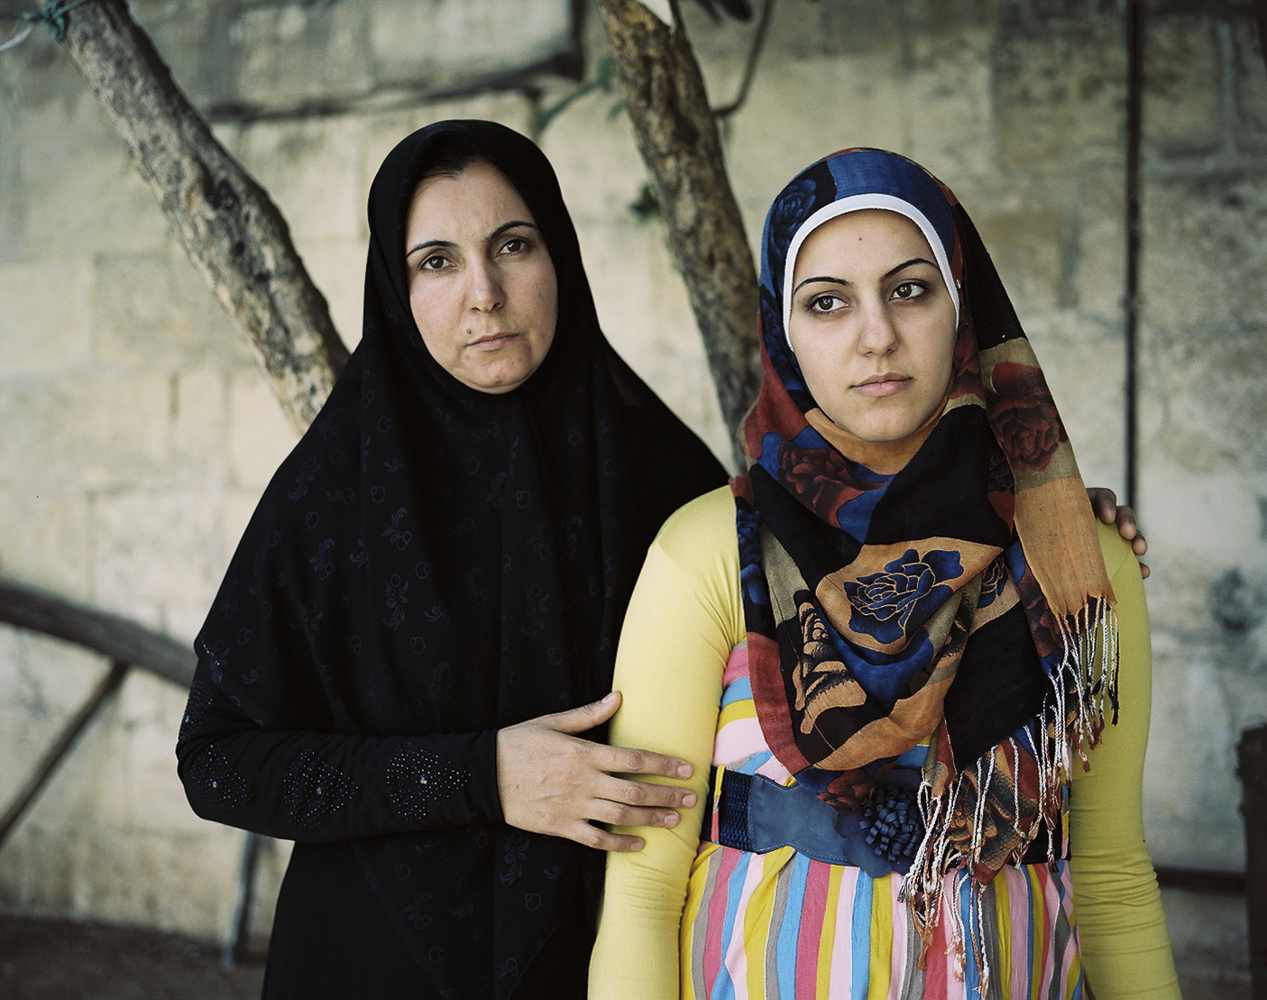 "Ragda (36) and her 7-months pregnant daughter Nora (19) at a shelter for widows in Gaziantep, Turkey. Ragda lost her husband and two sons in a barrel bomb attack in her old neighborhood in Syria. ""We cannot make plans for our future until Syria is whole again."" - Ragda S."